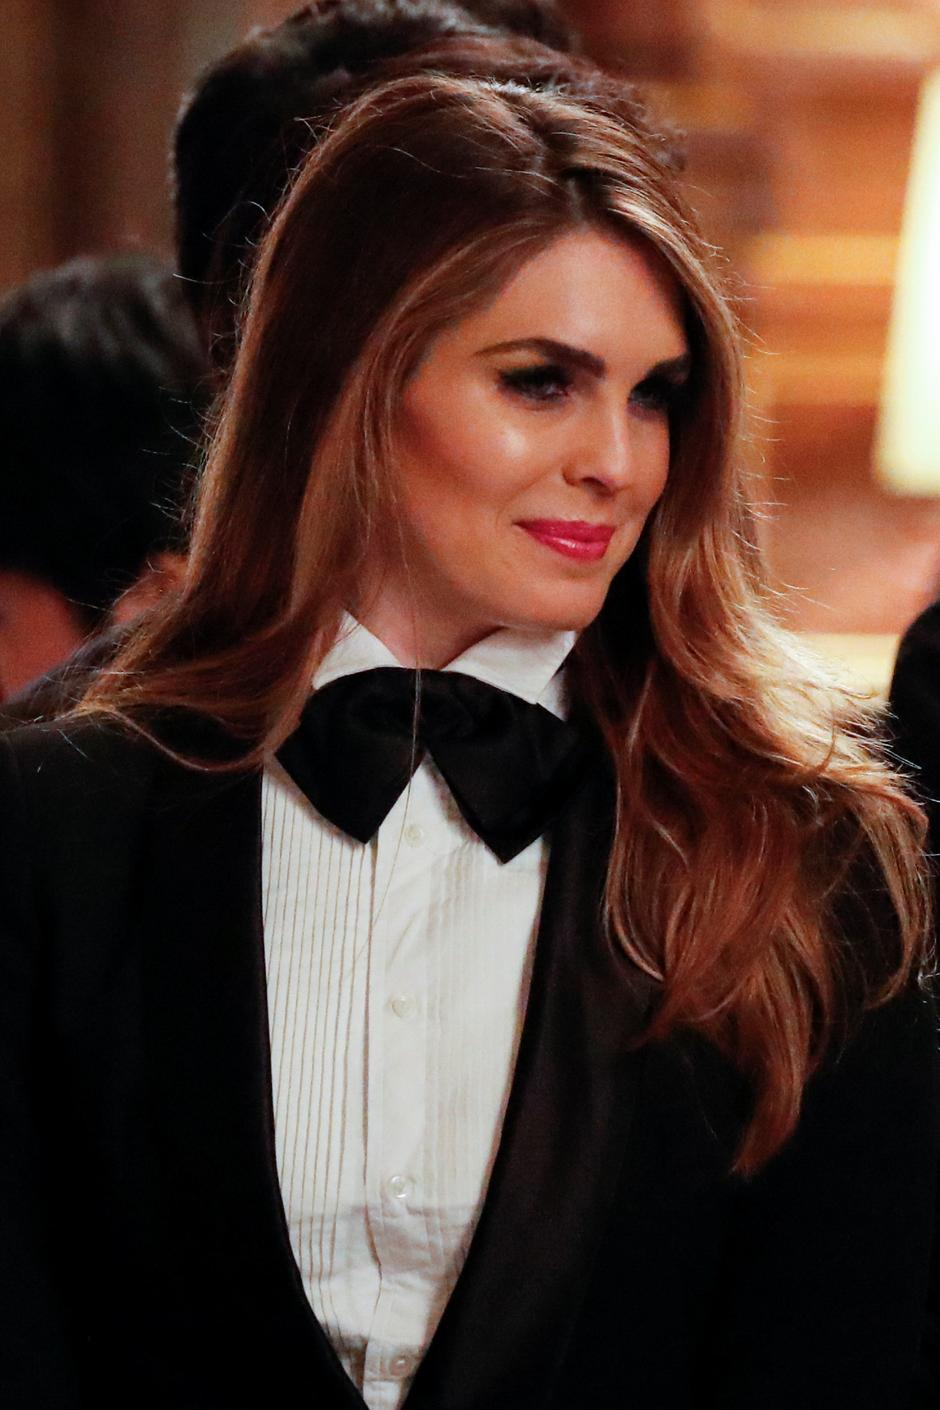 Hope Hicks | Author: REUTERS